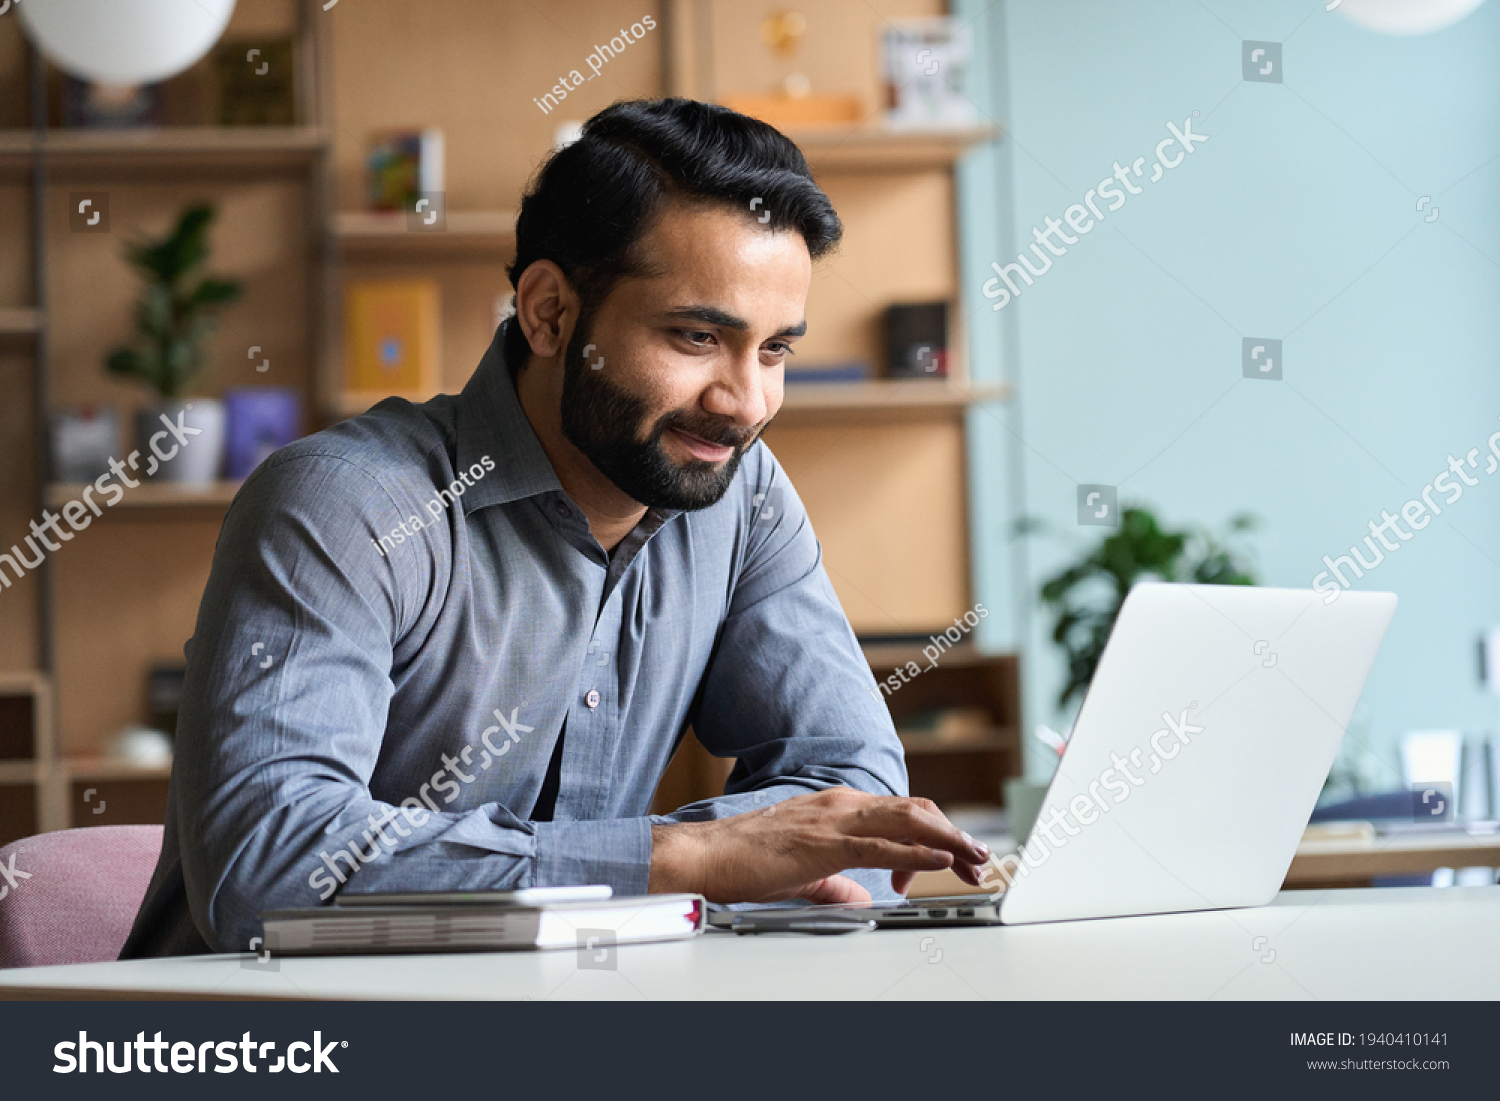 Smiling indian business man working on laptop at home office. Young indian student or remote teacher using computer remote studying, virtual training, watching online education webinar at home office. #1940410141